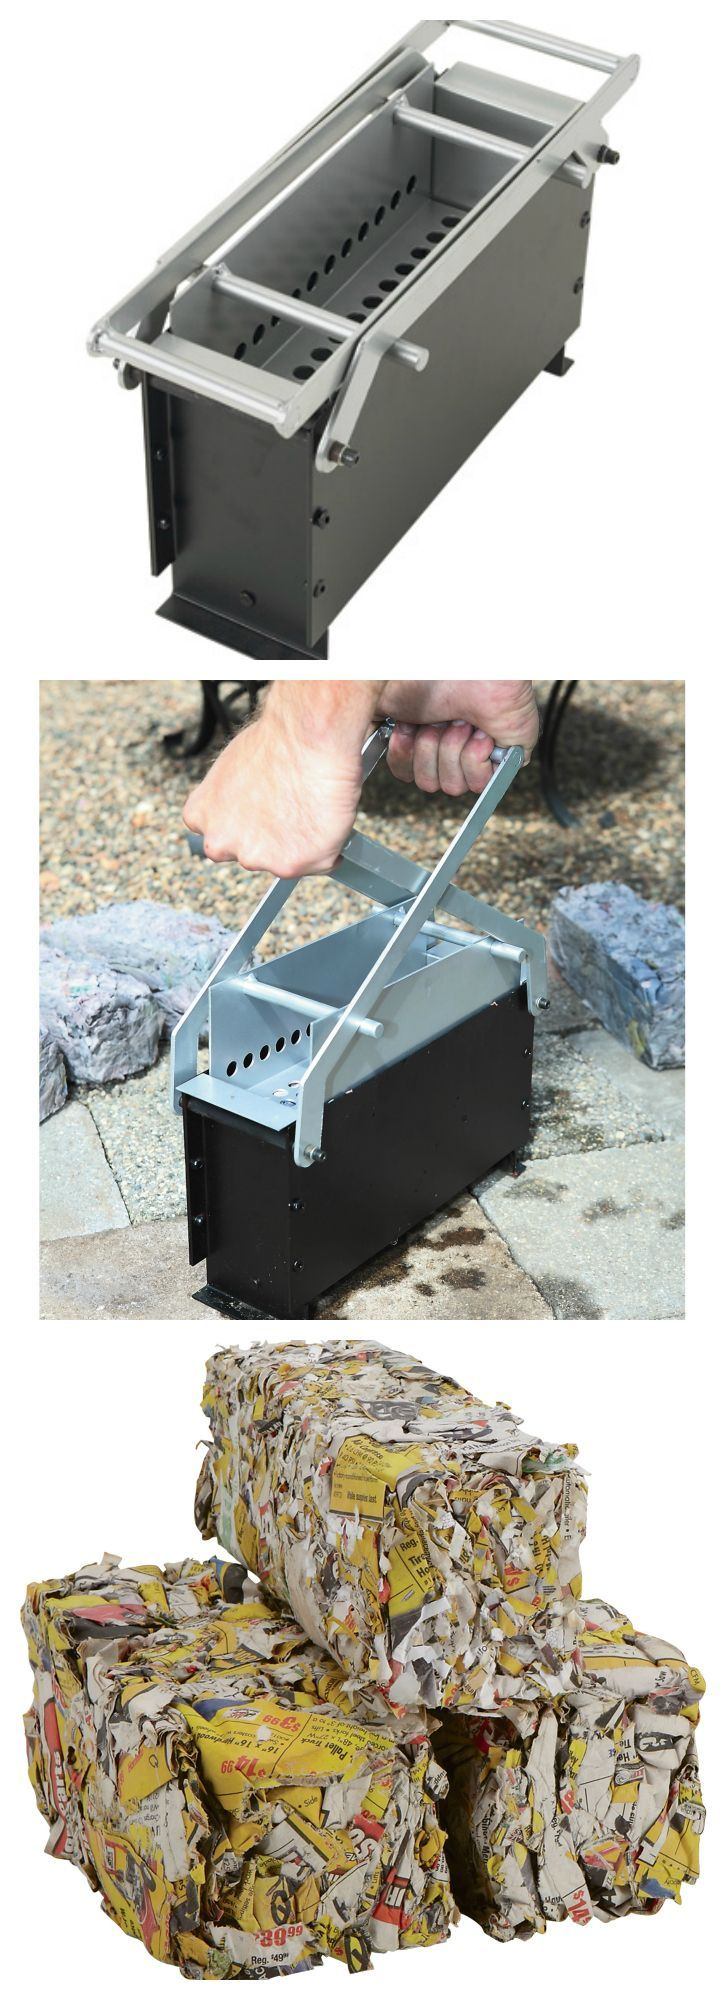 Paper Log Maker - So you want a cozy fire but don't have money to burn?